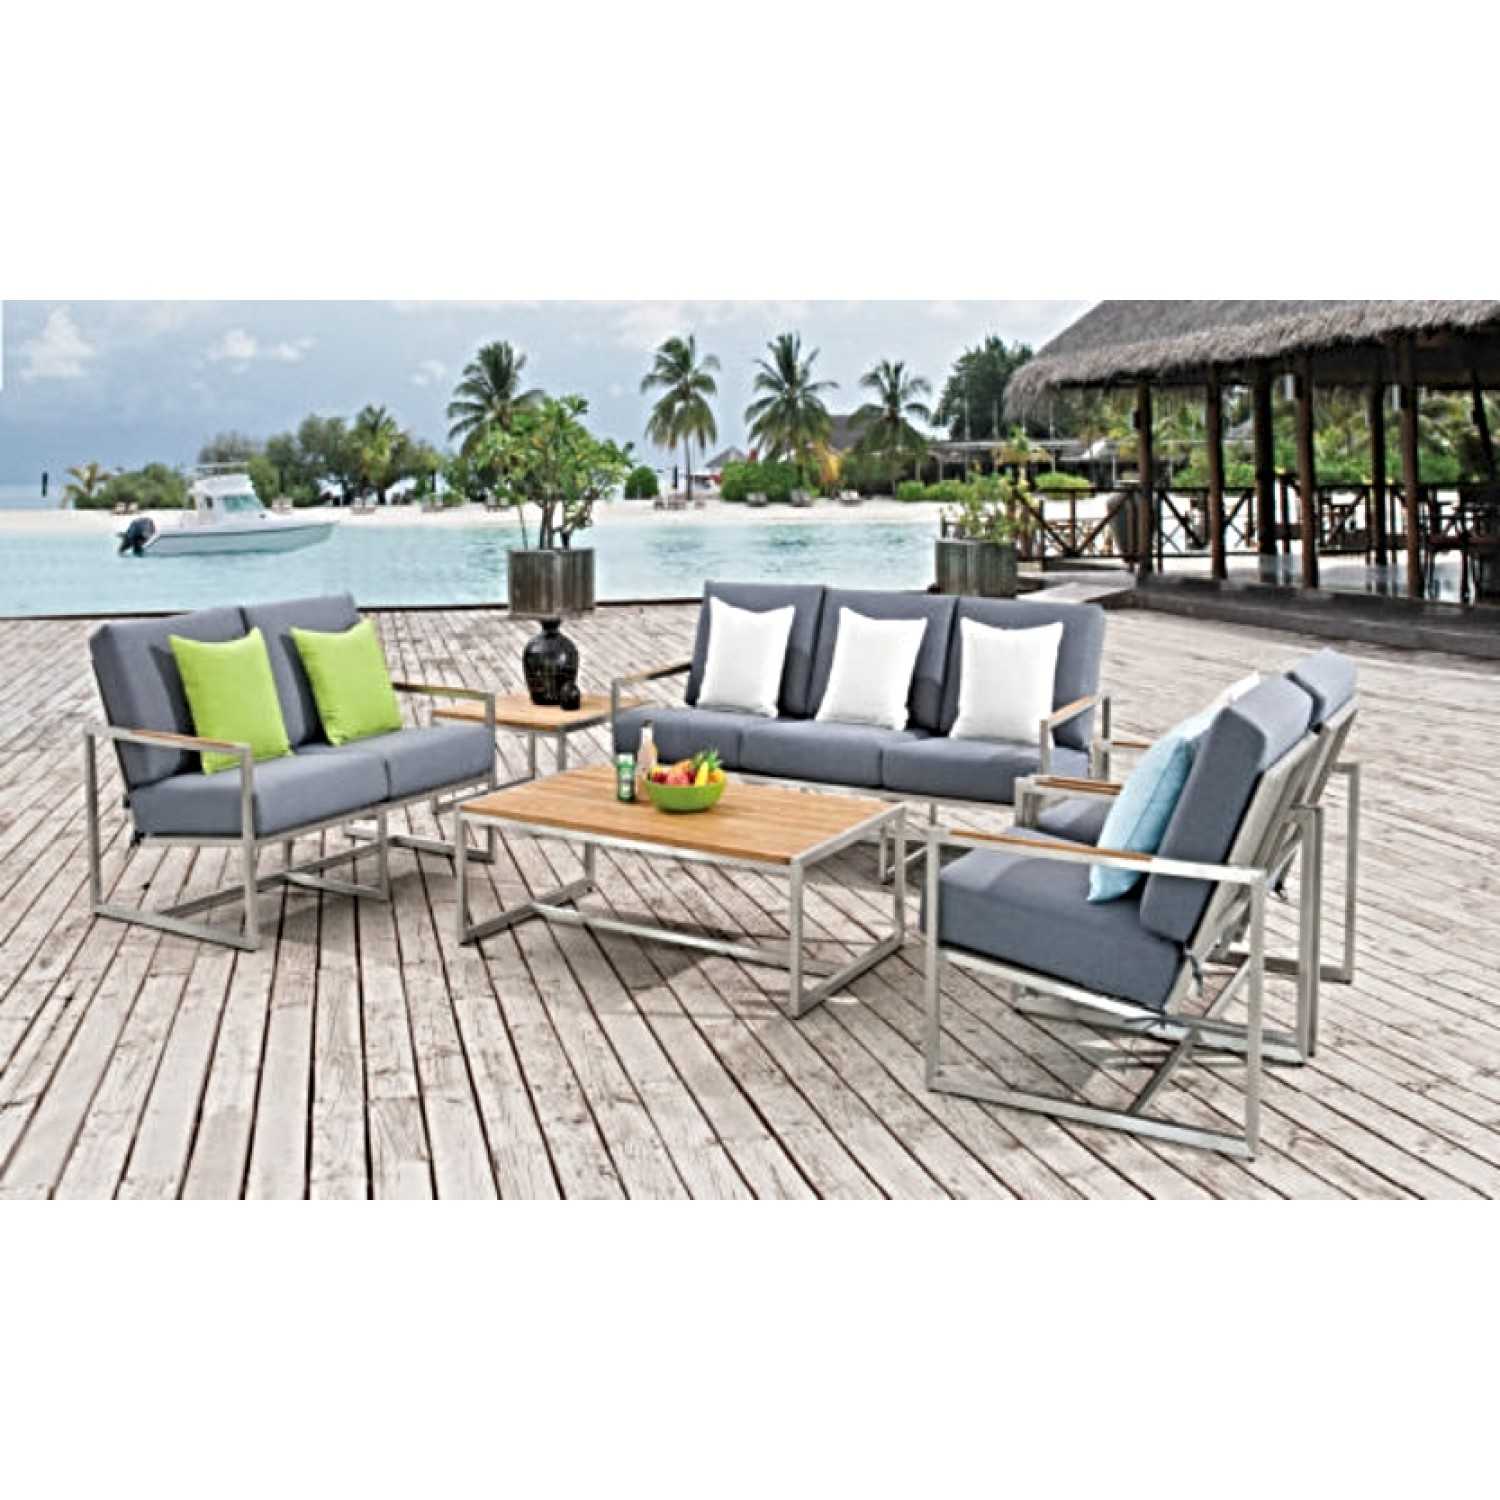 Acacia Outdoor Sofa Set